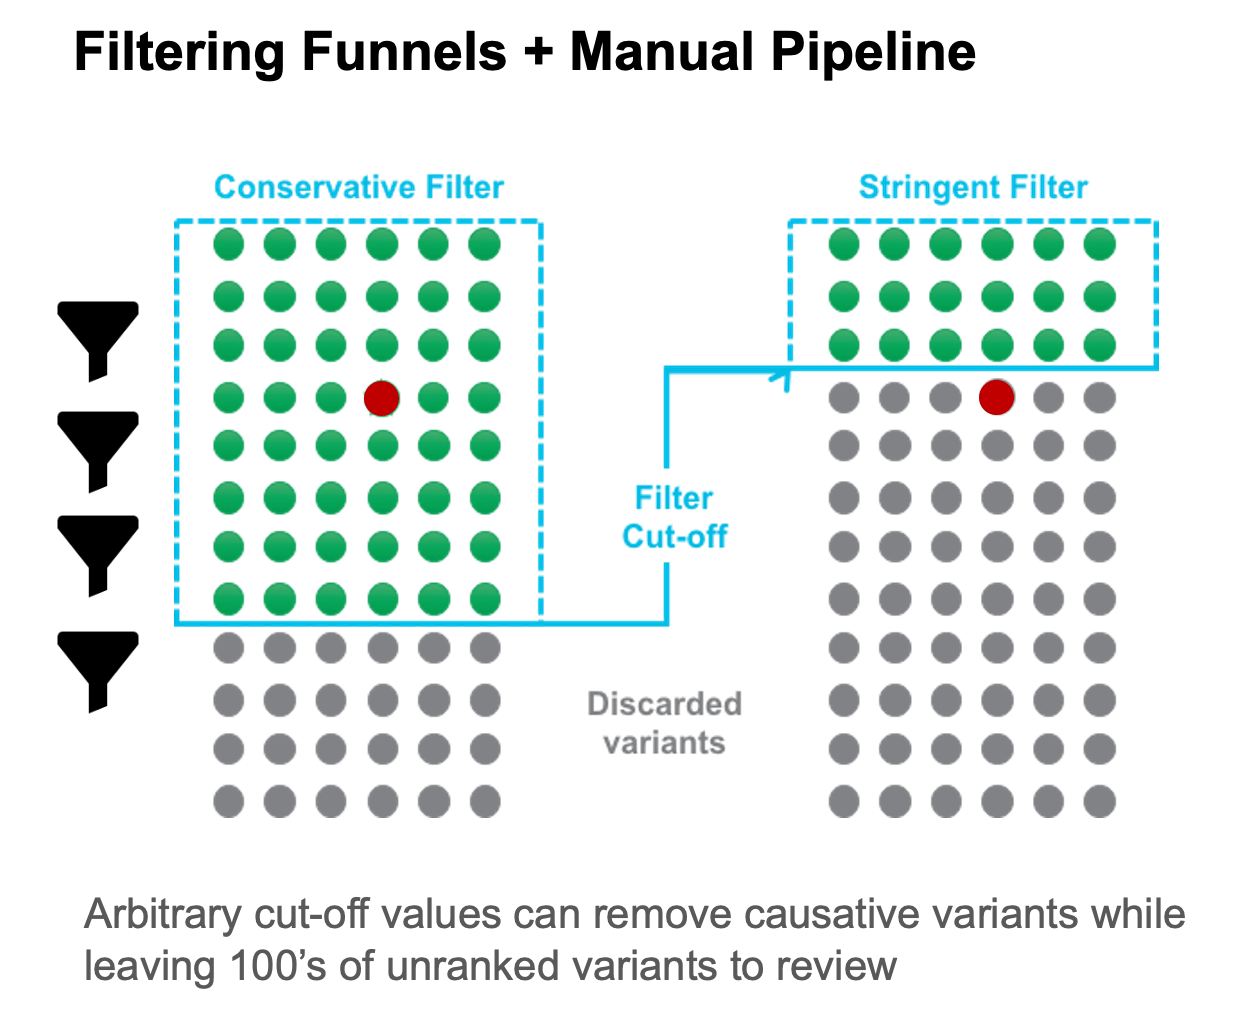 Filtering Funnels + Manual Pipeline